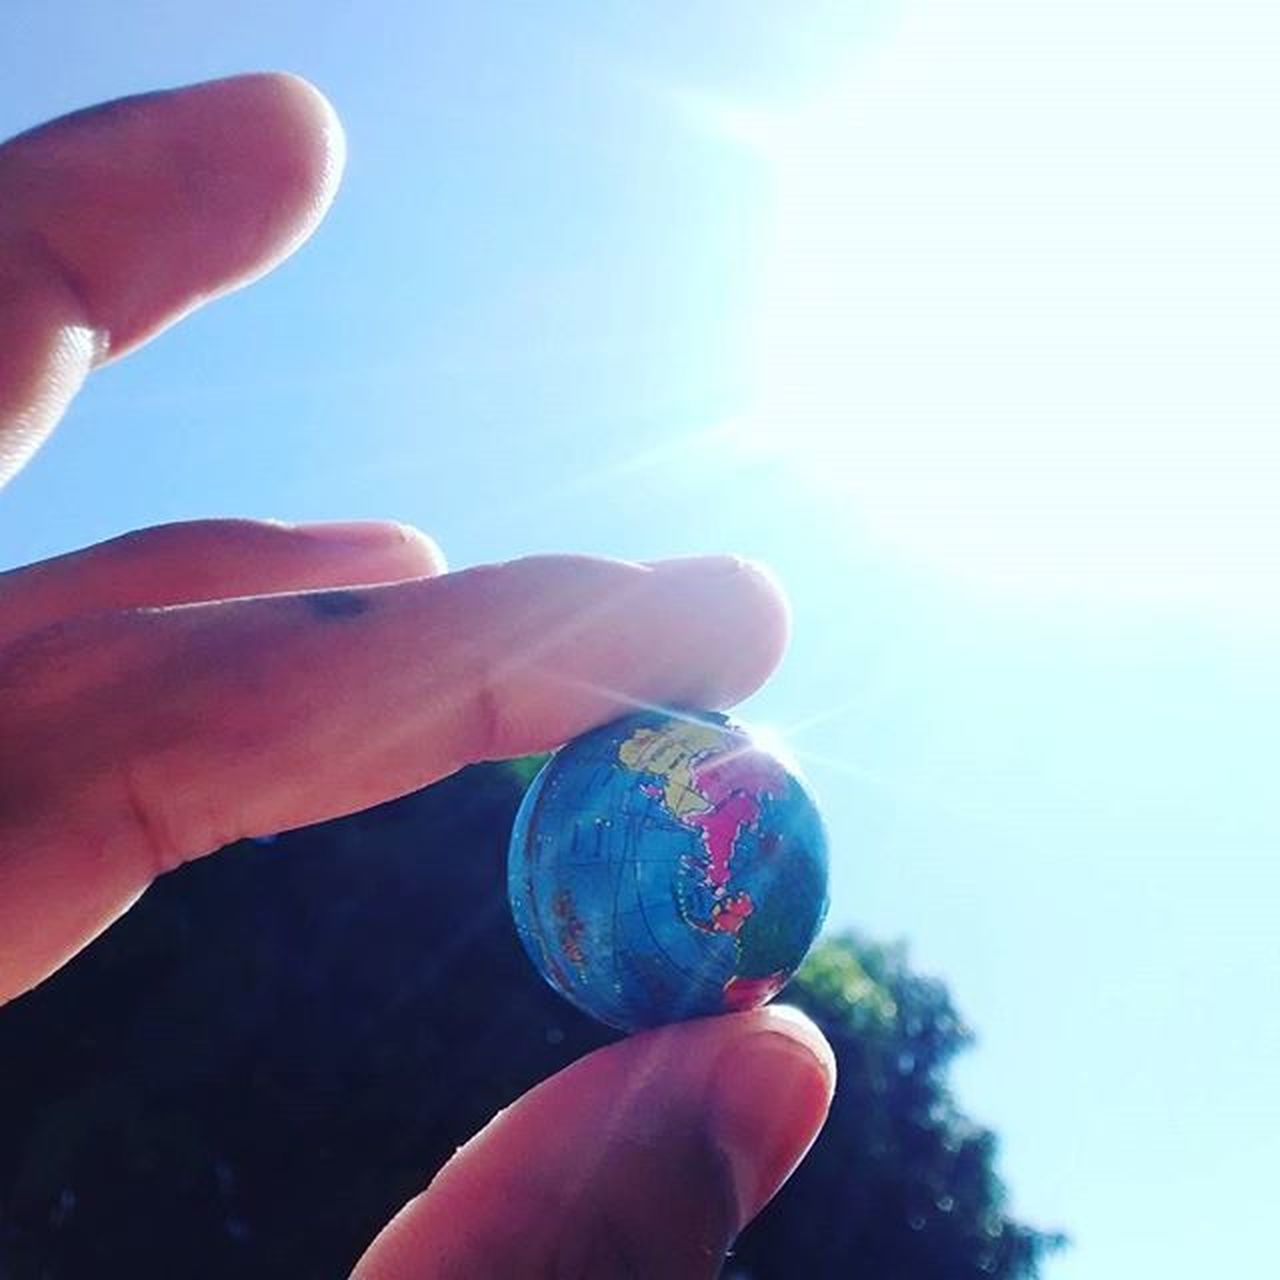 human hand, human body part, human finger, holding, one person, real people, personal perspective, sky, close-up, sunlight, blue, outdoors, day, planet earth, nature, space, people, adult